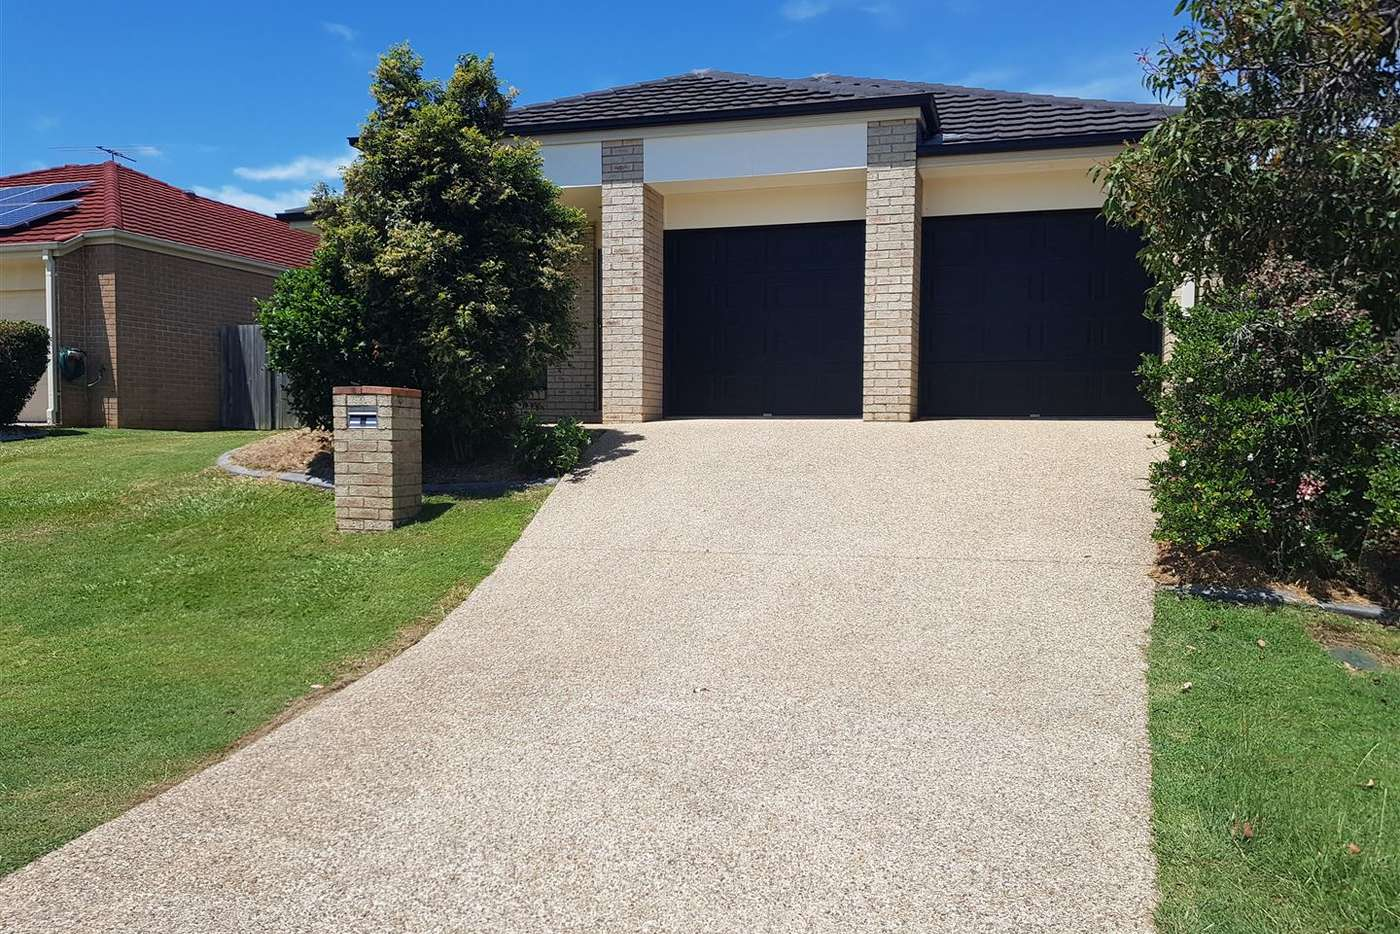 Main view of Homely house listing, 7 Neales Street, Murrumba Downs QLD 4503